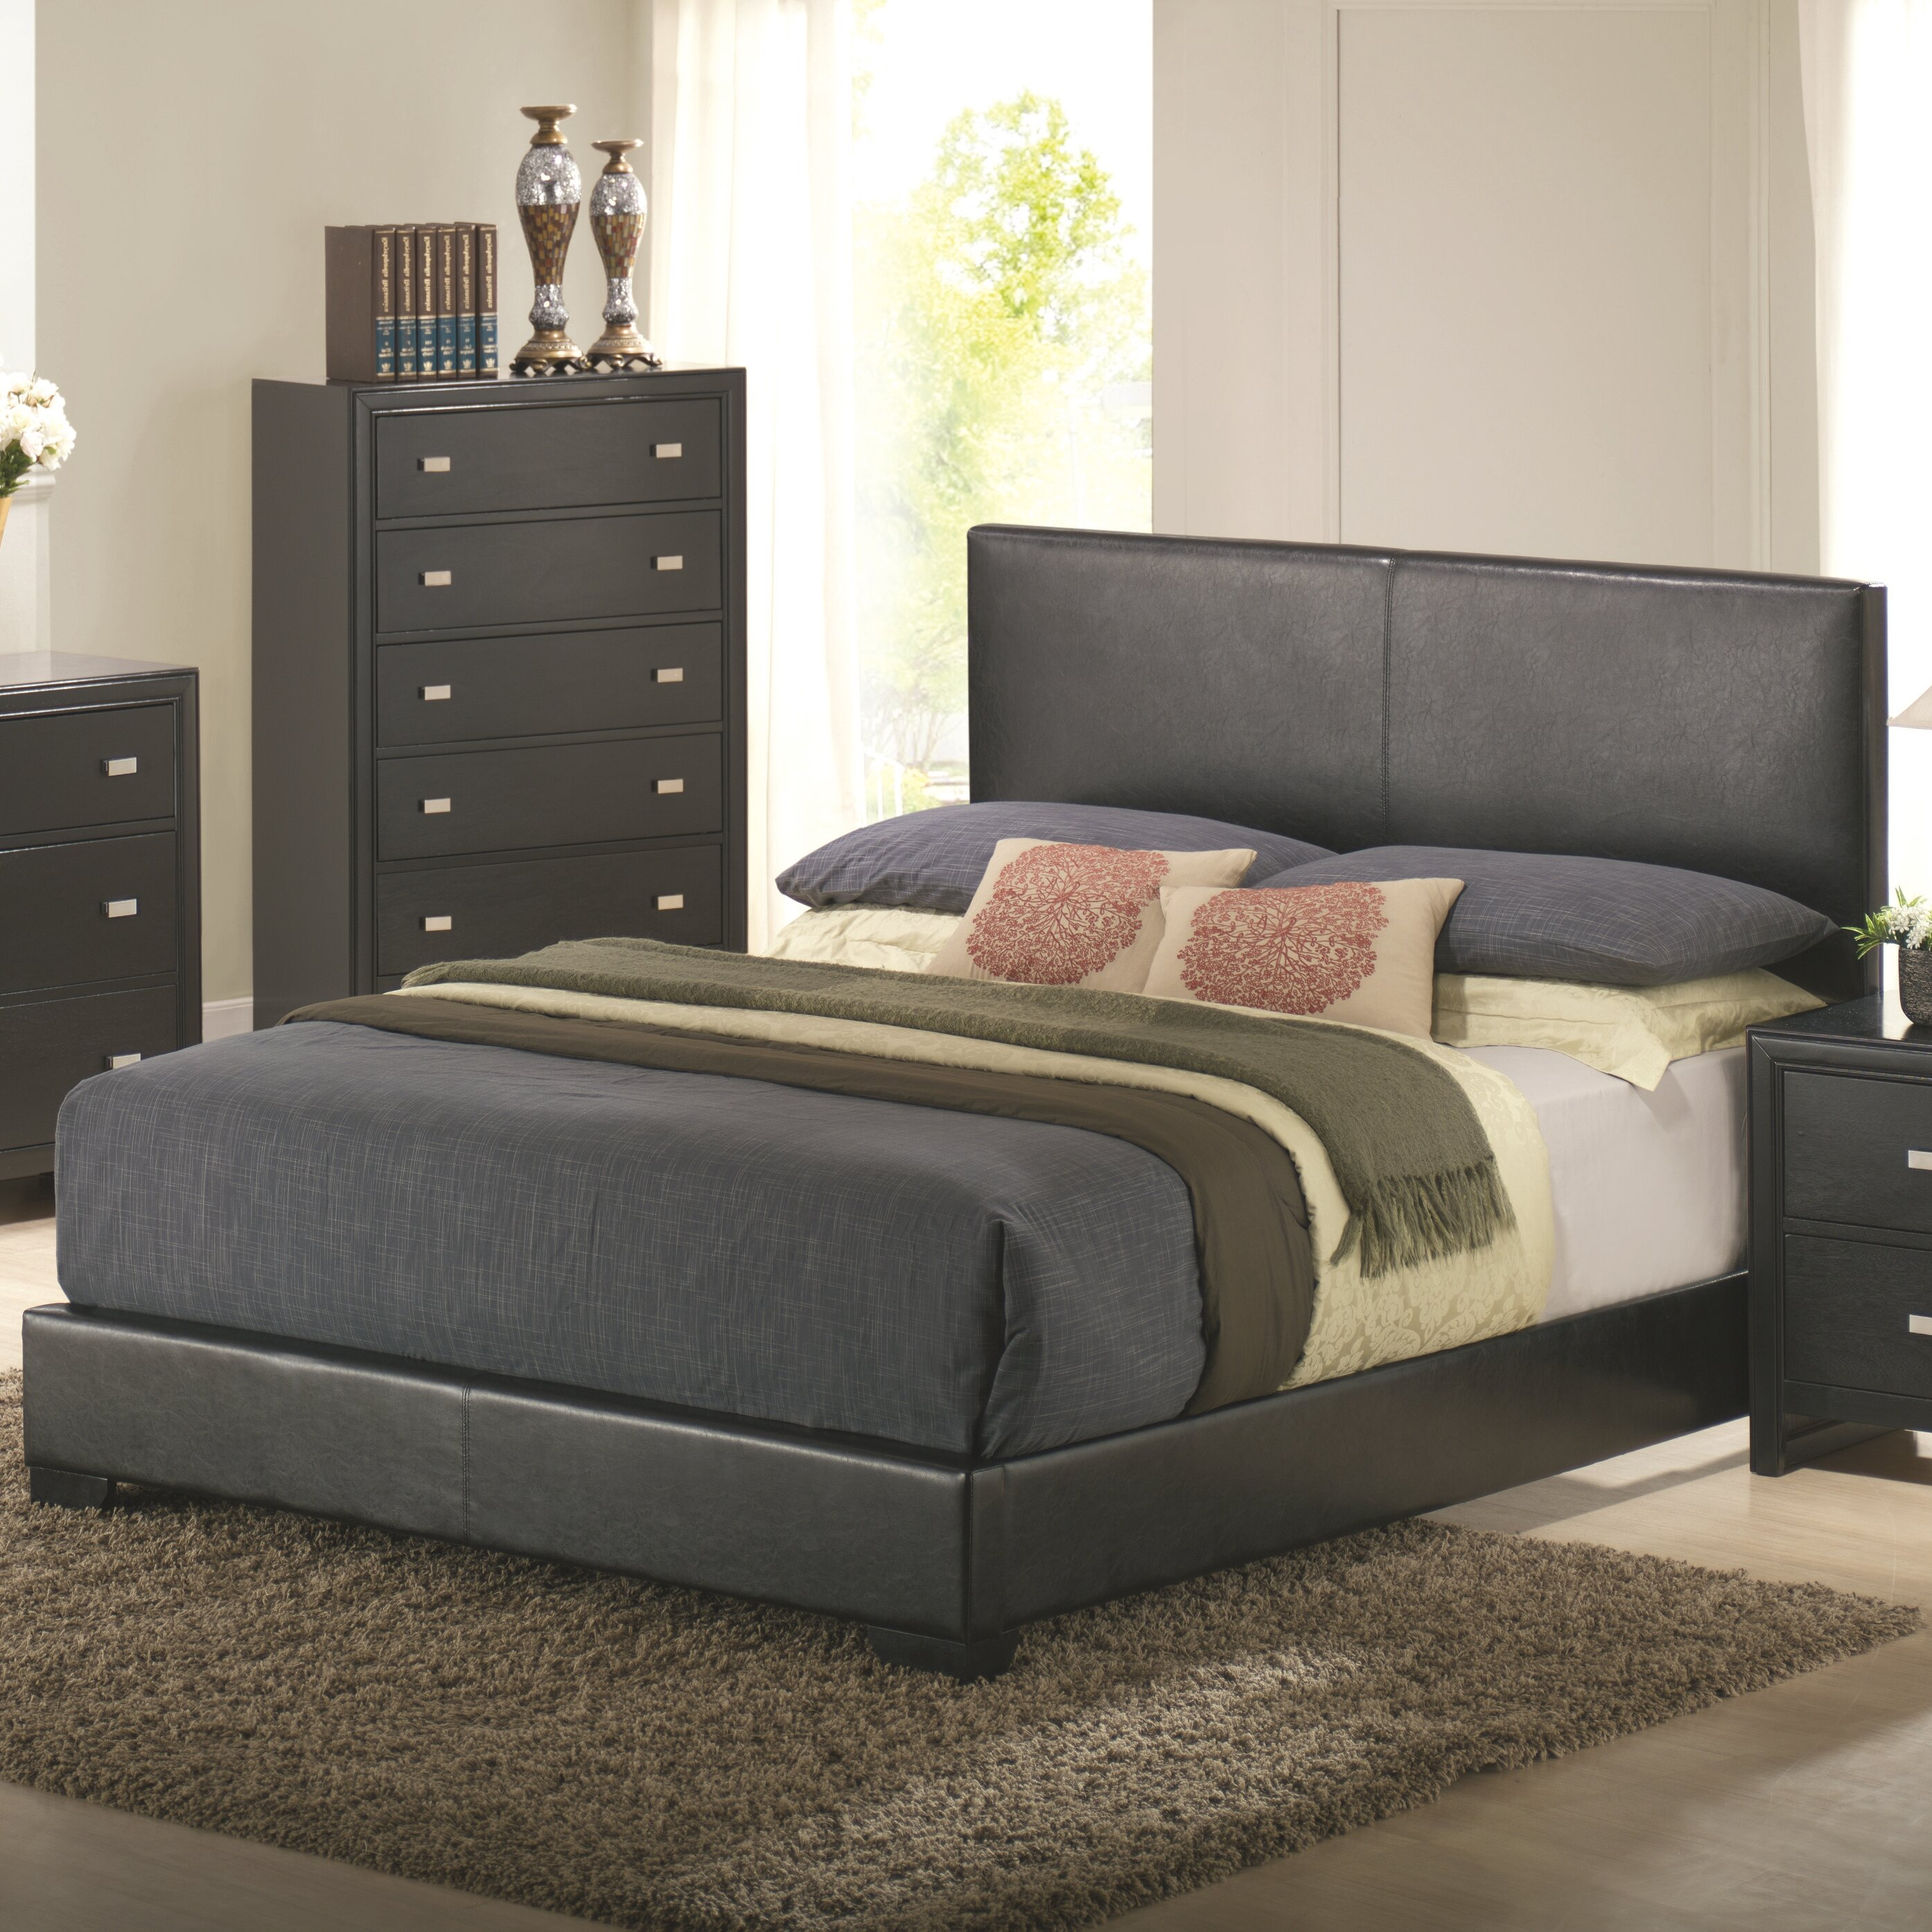 Wildon Home Kaspa Queen Platform Customizable Bedroom Set Reviews Wayfair